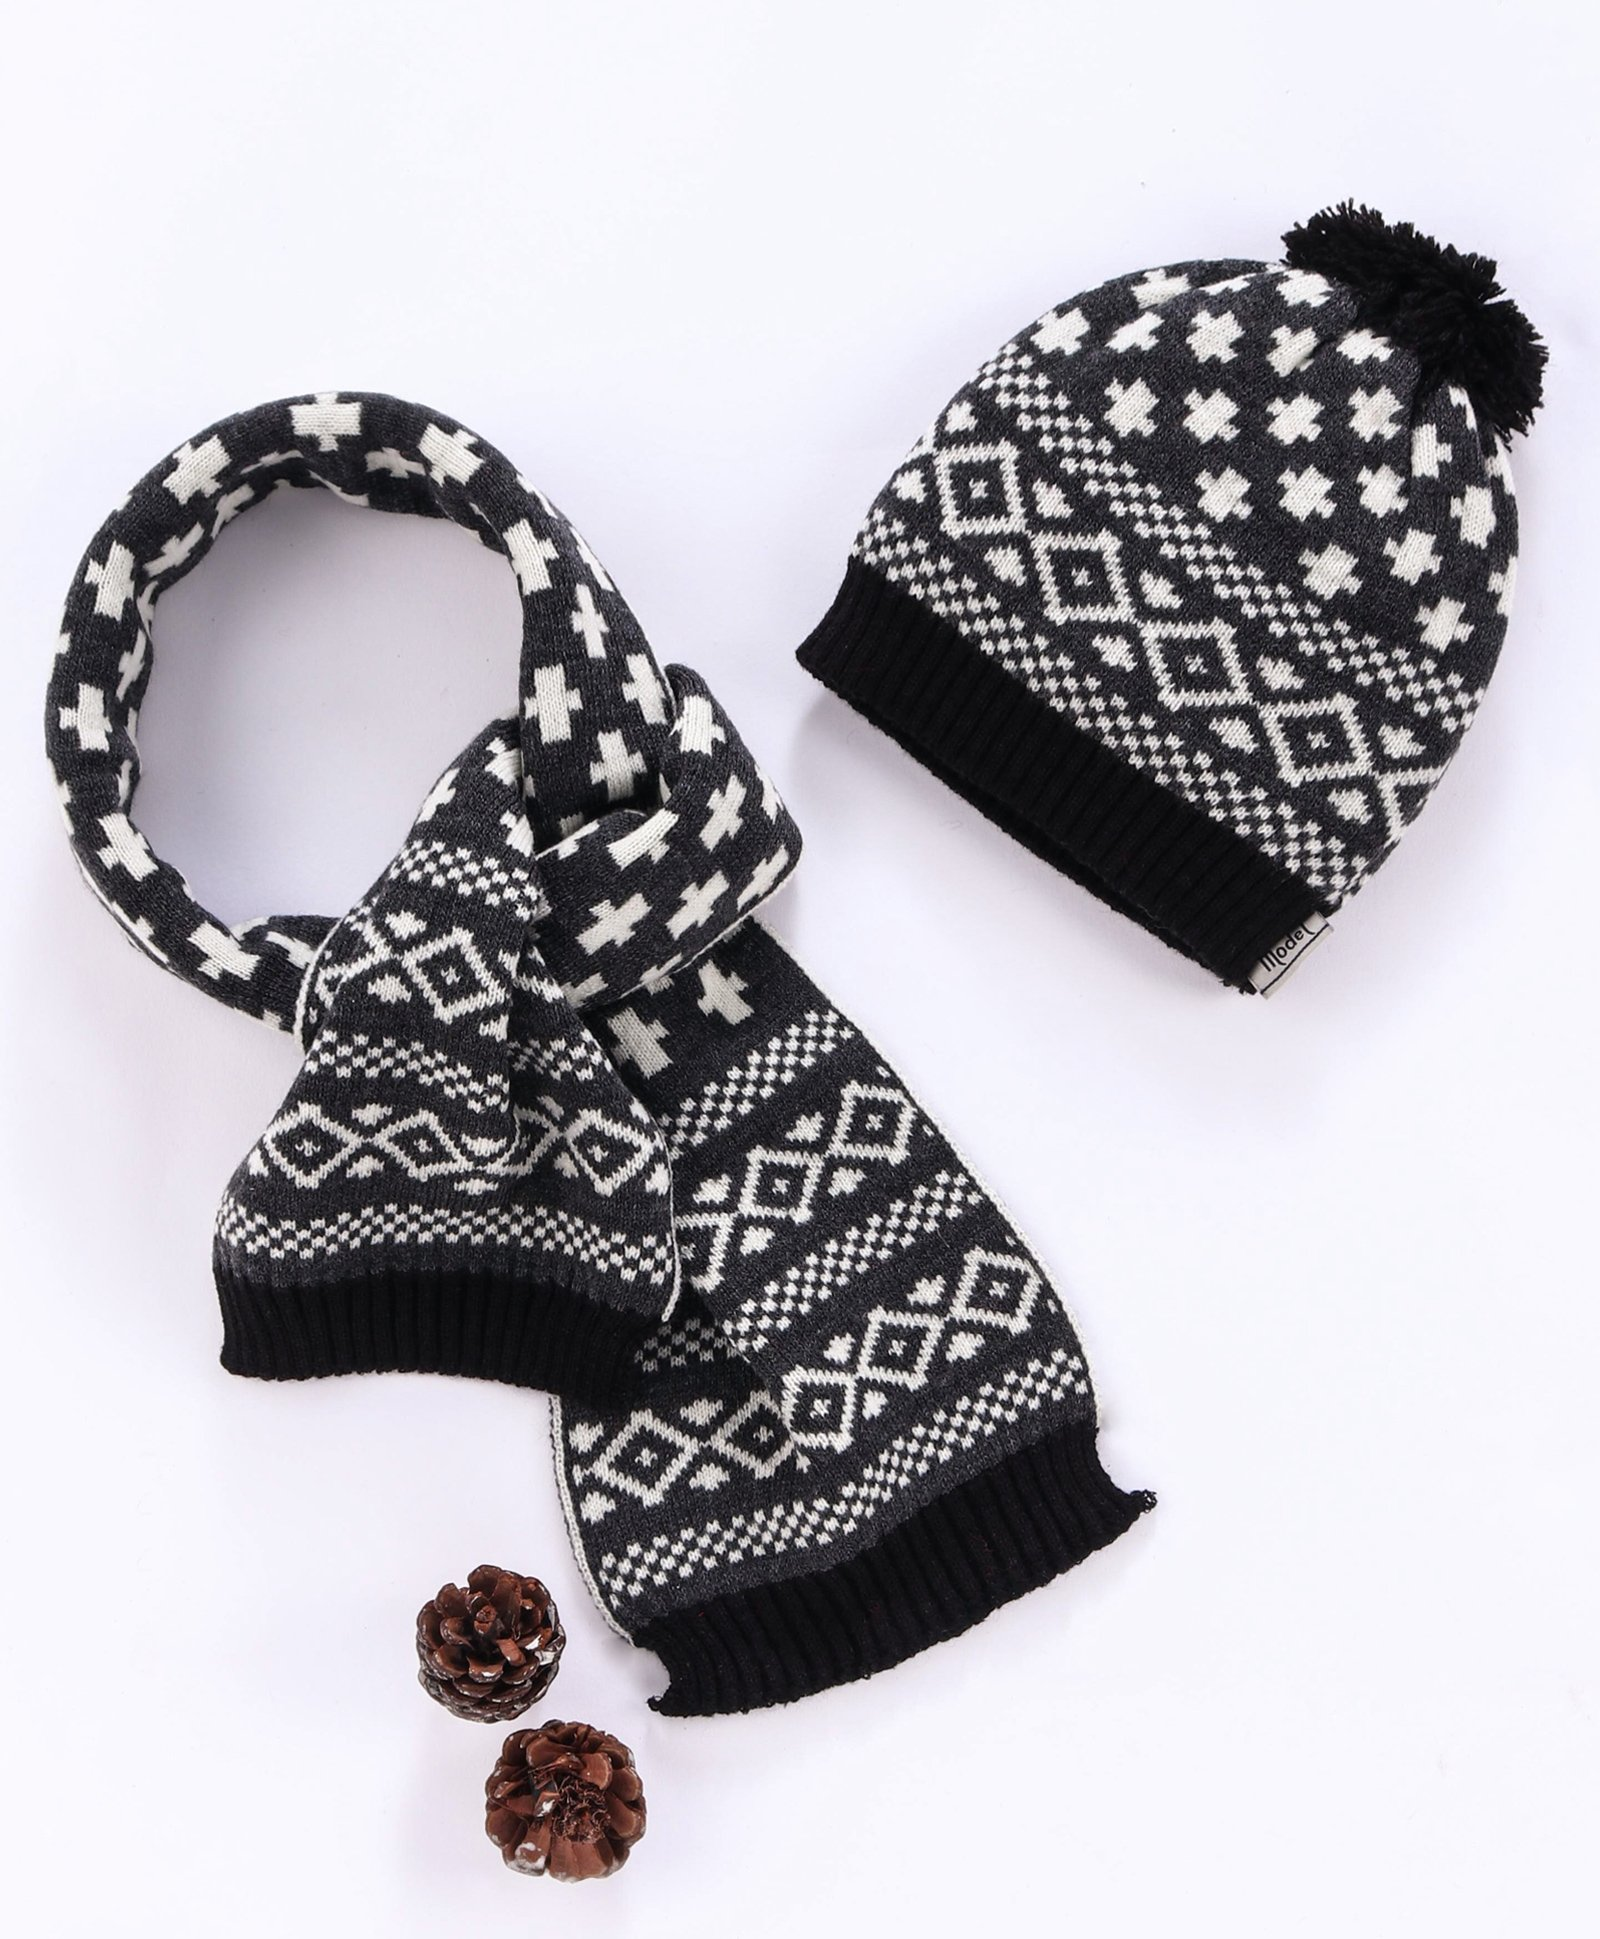 Model Woolen Cap Muffler Set With Pom Pom Dark Grey Online In India Buy At Best Price From Firstcry Com 3021952